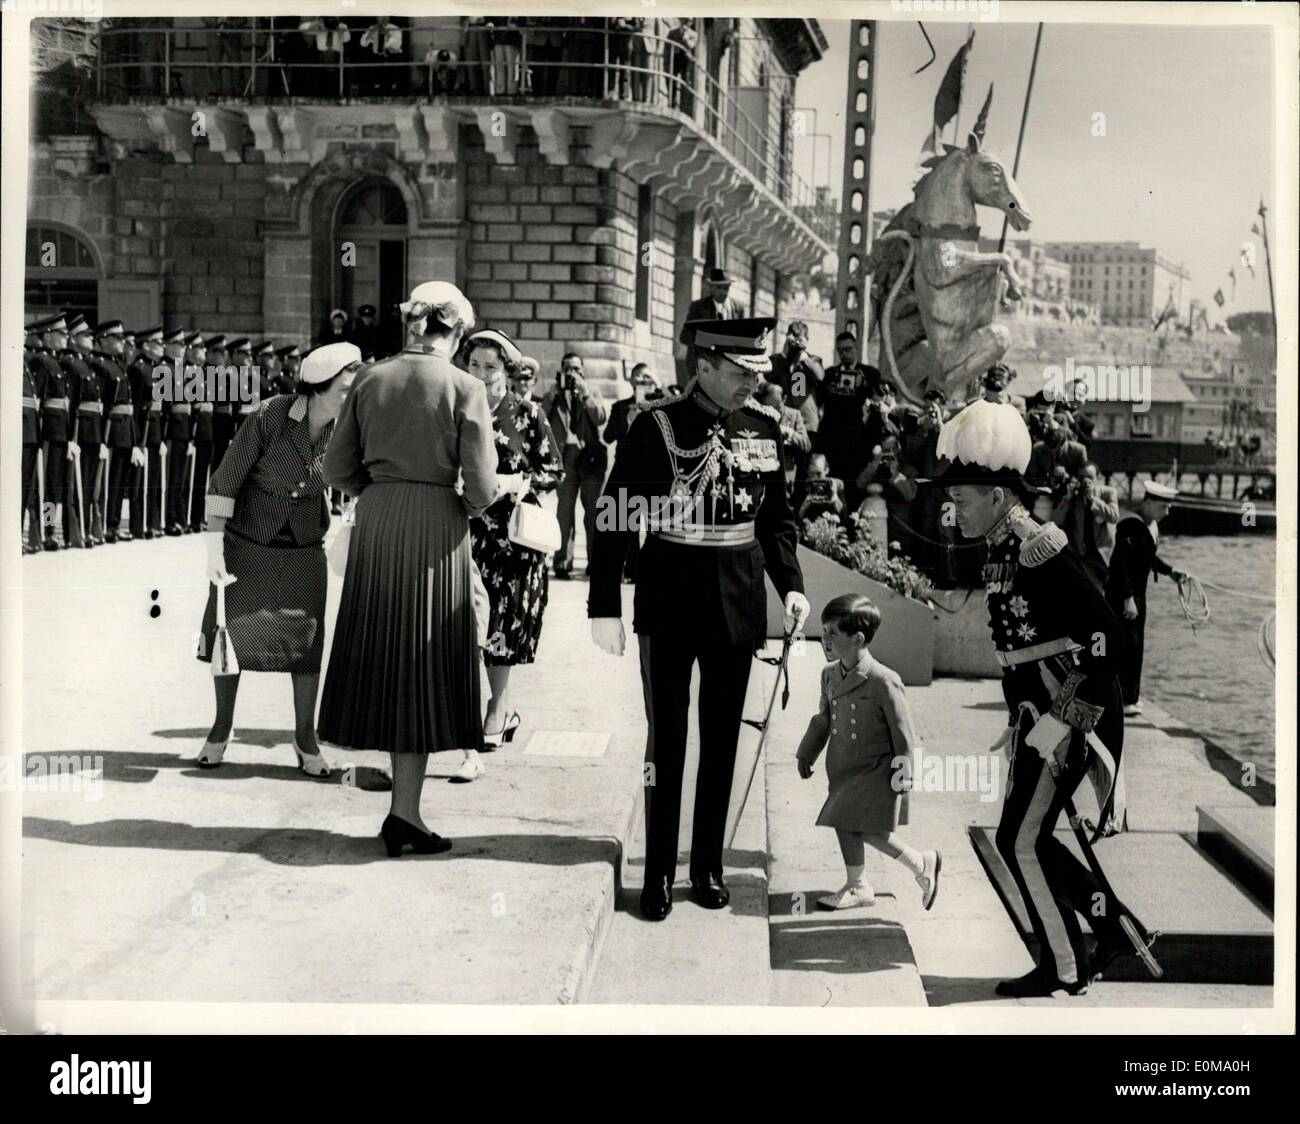 May 04, 1954 - Prince Charles And Princess Anne Watch Malta Parade. Photo shows Prince -Charles is escorted ashore at Custom House Quay, Malta, today, by Sir Geraldcreasy (right), the governor of Malta. With Princess Anne, the little Prince was on his way to watch the Queen and the Duke of Edinburgh review a combined Services - parade on the Floriana parade ground, which the Royal children watched from a hotel balcony. - Stock Image